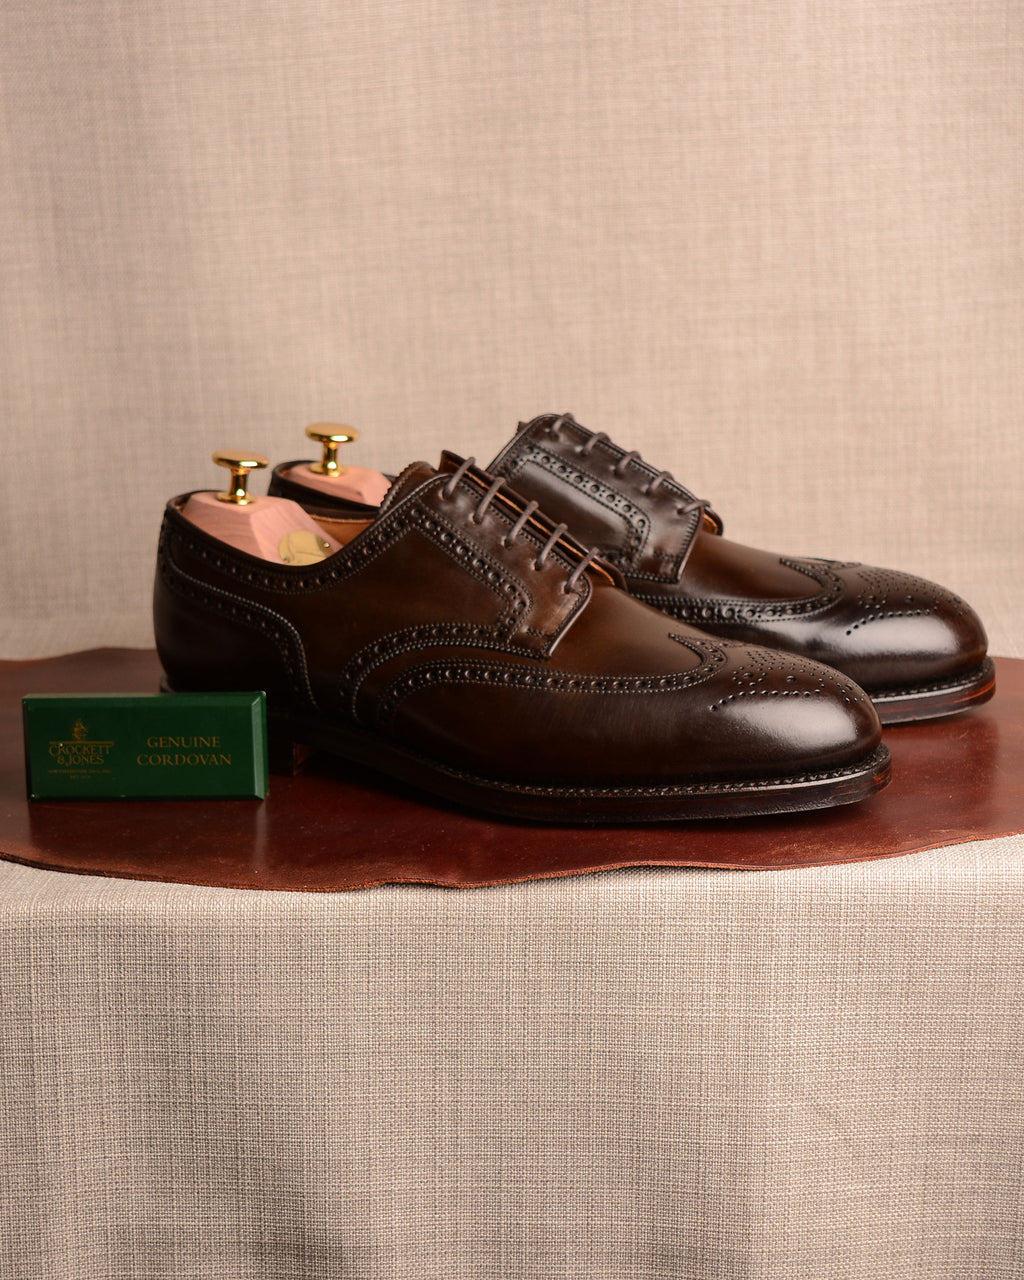 Crockett & Jones Cardiff - Dark Brown Cordovan